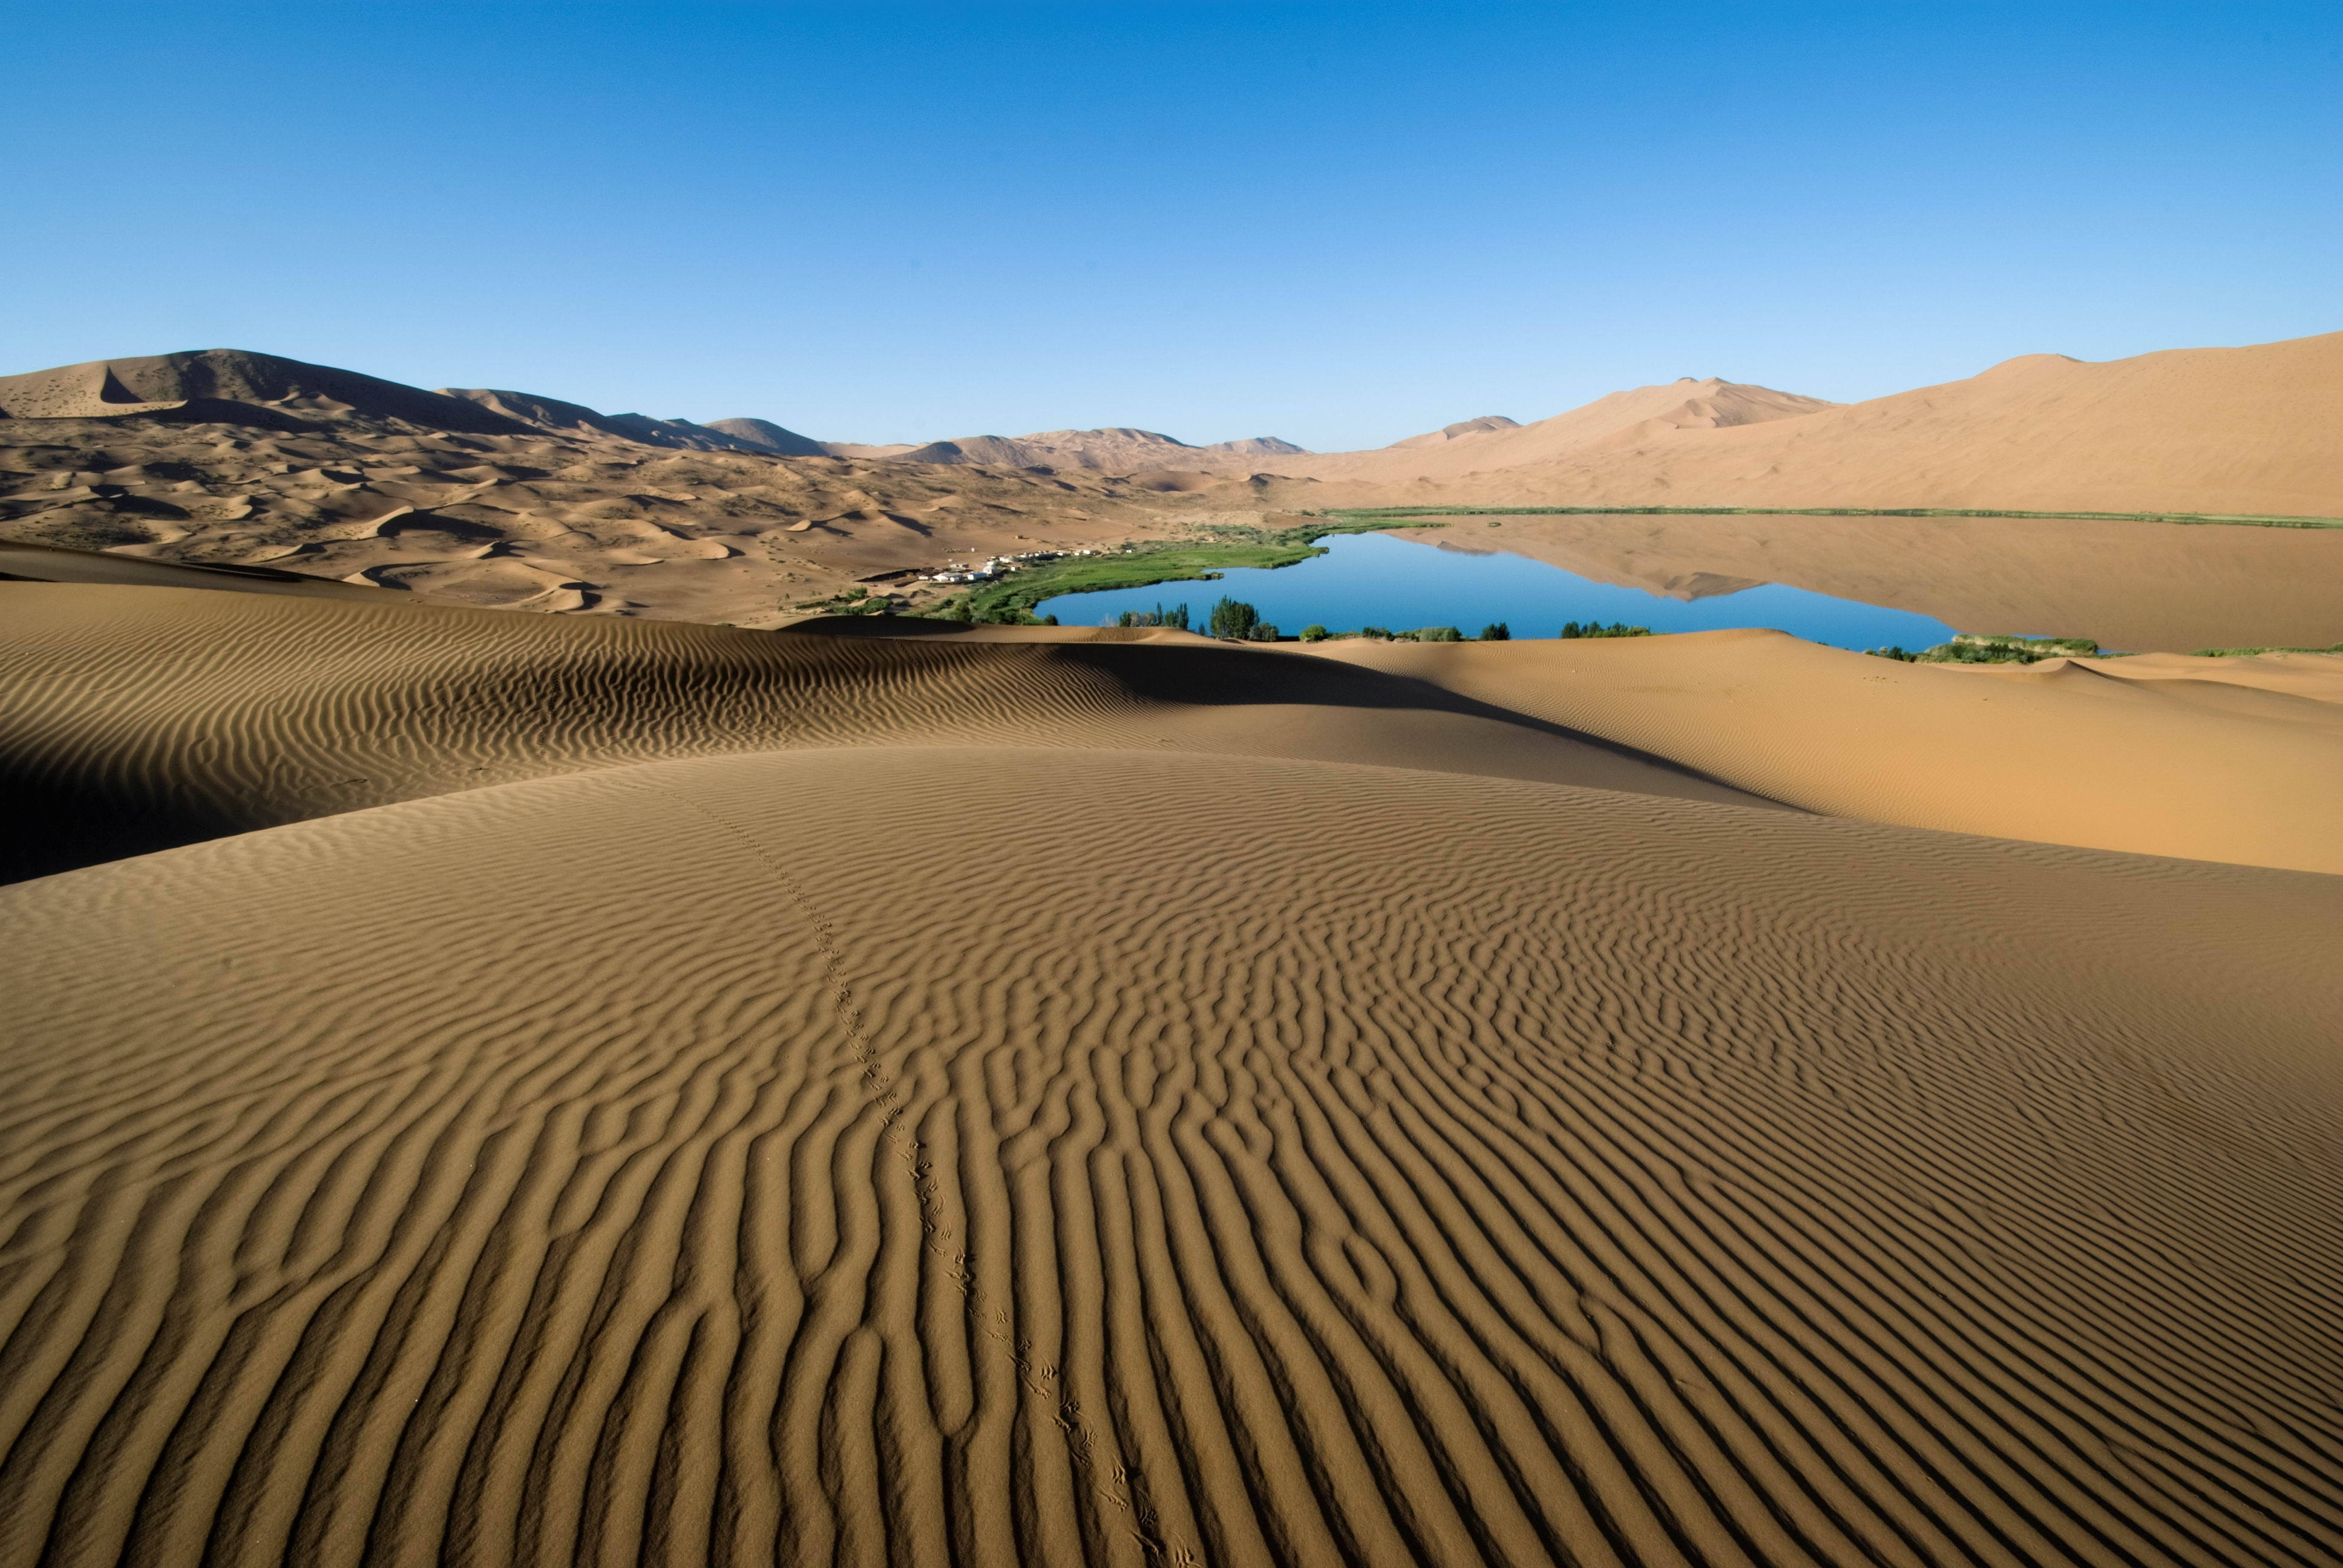 61760 download wallpaper Desert, Patterns, Nature, Sand, Lake, Shore, Lines, Vegetation, Shores, Oasis screensavers and pictures for free